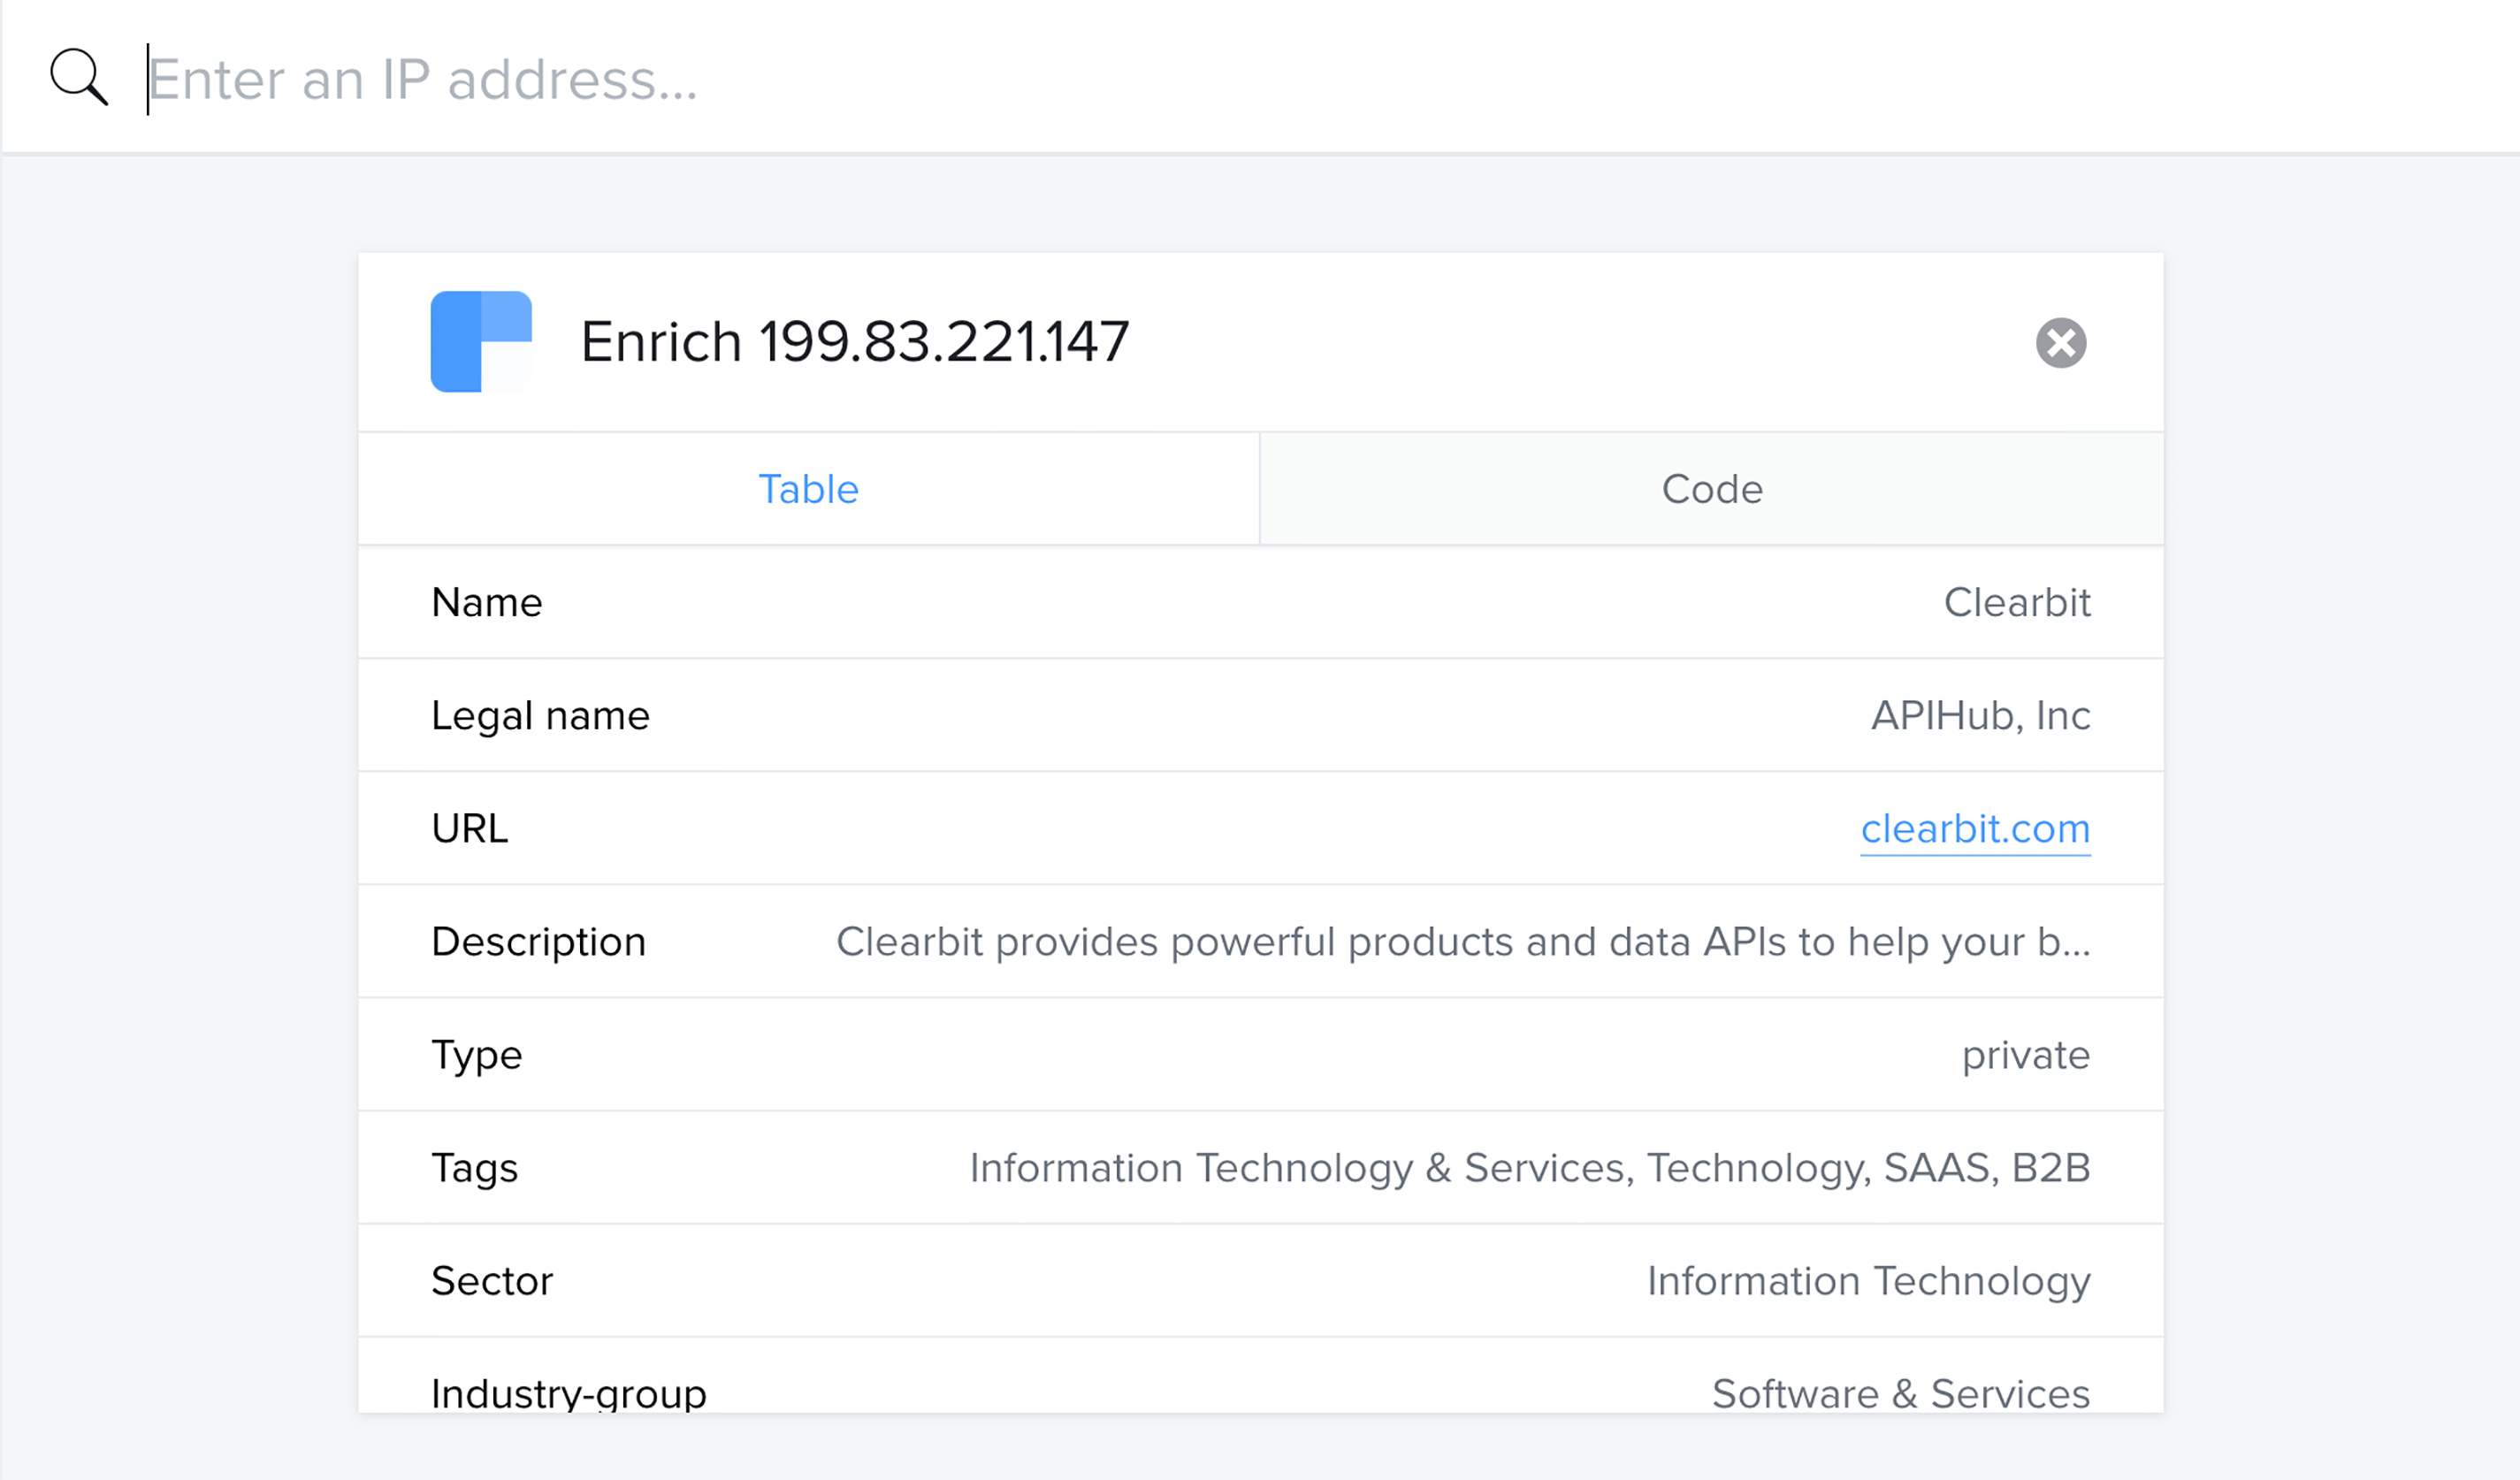 Generate a full company profile based solely on an IP address.